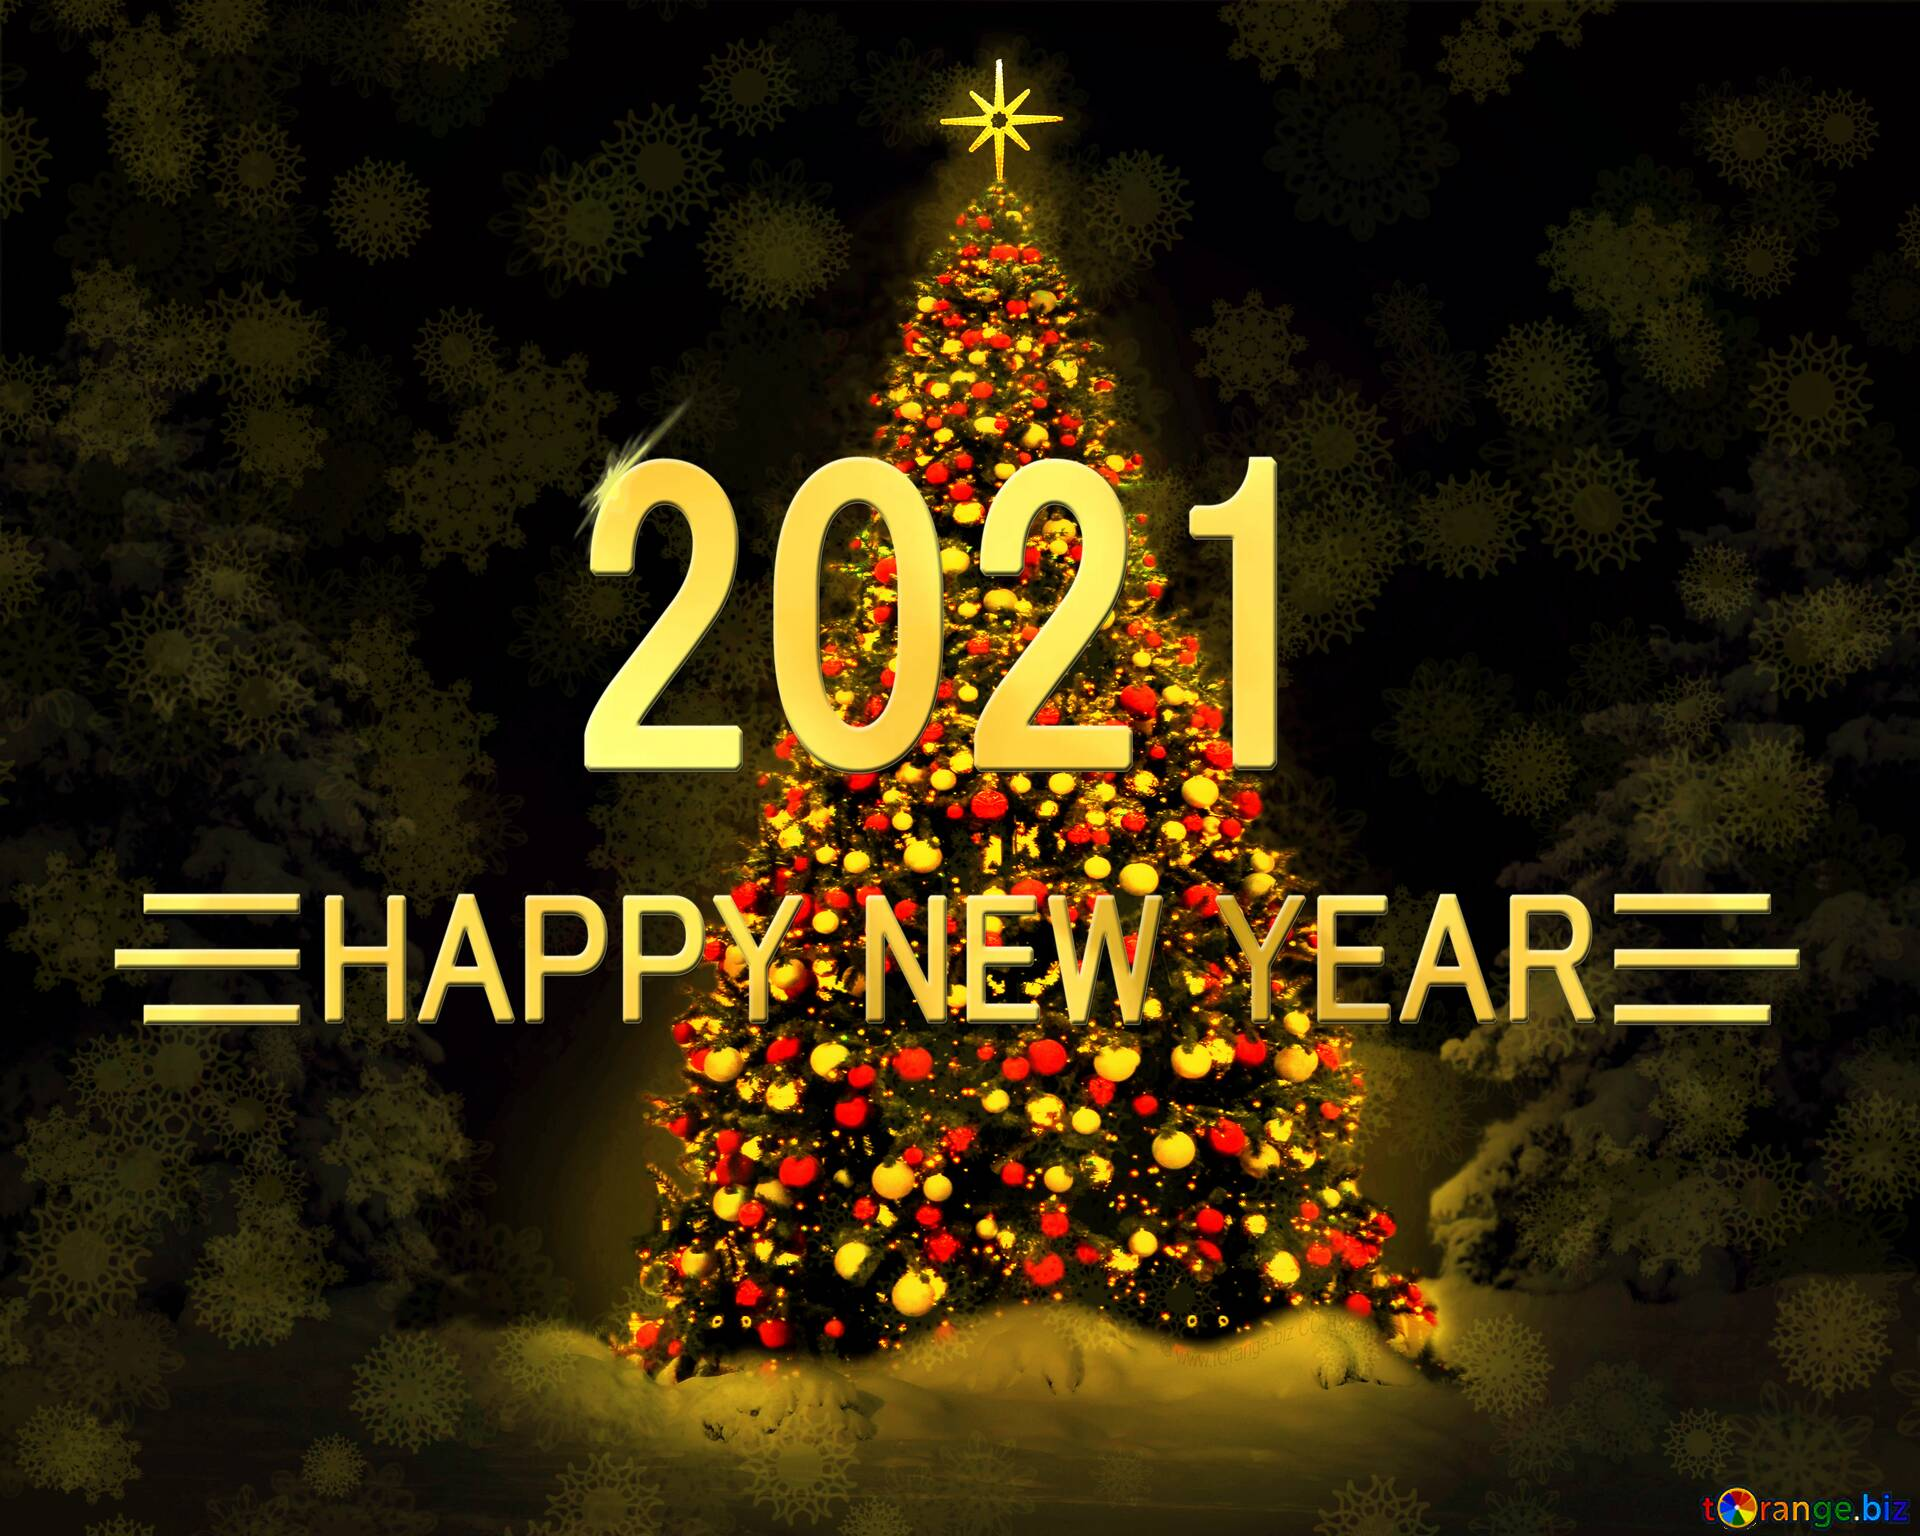 download free picture christmas tree shiny happy new year 2021 background on cc by license free image stock torange biz fx 141075 download free picture christmas tree shiny happy new year 2021 background on cc by license free image stock torange biz fx 141075